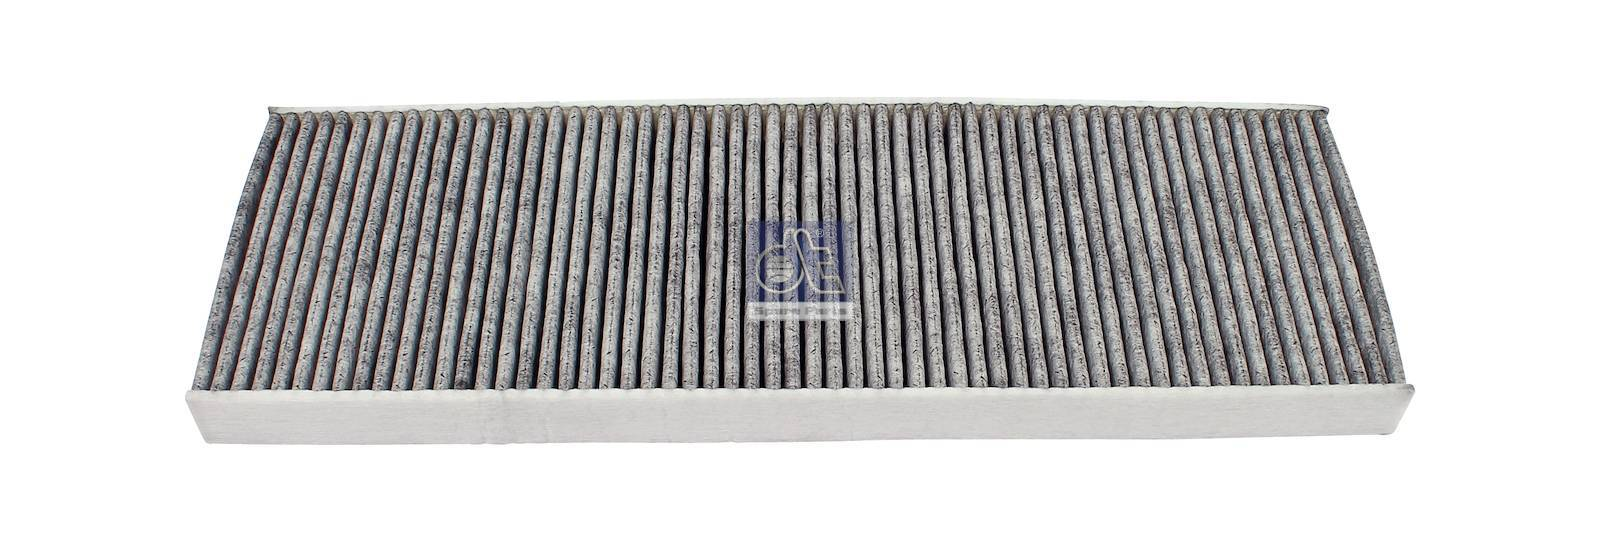 Cabin air filter, activated carbon